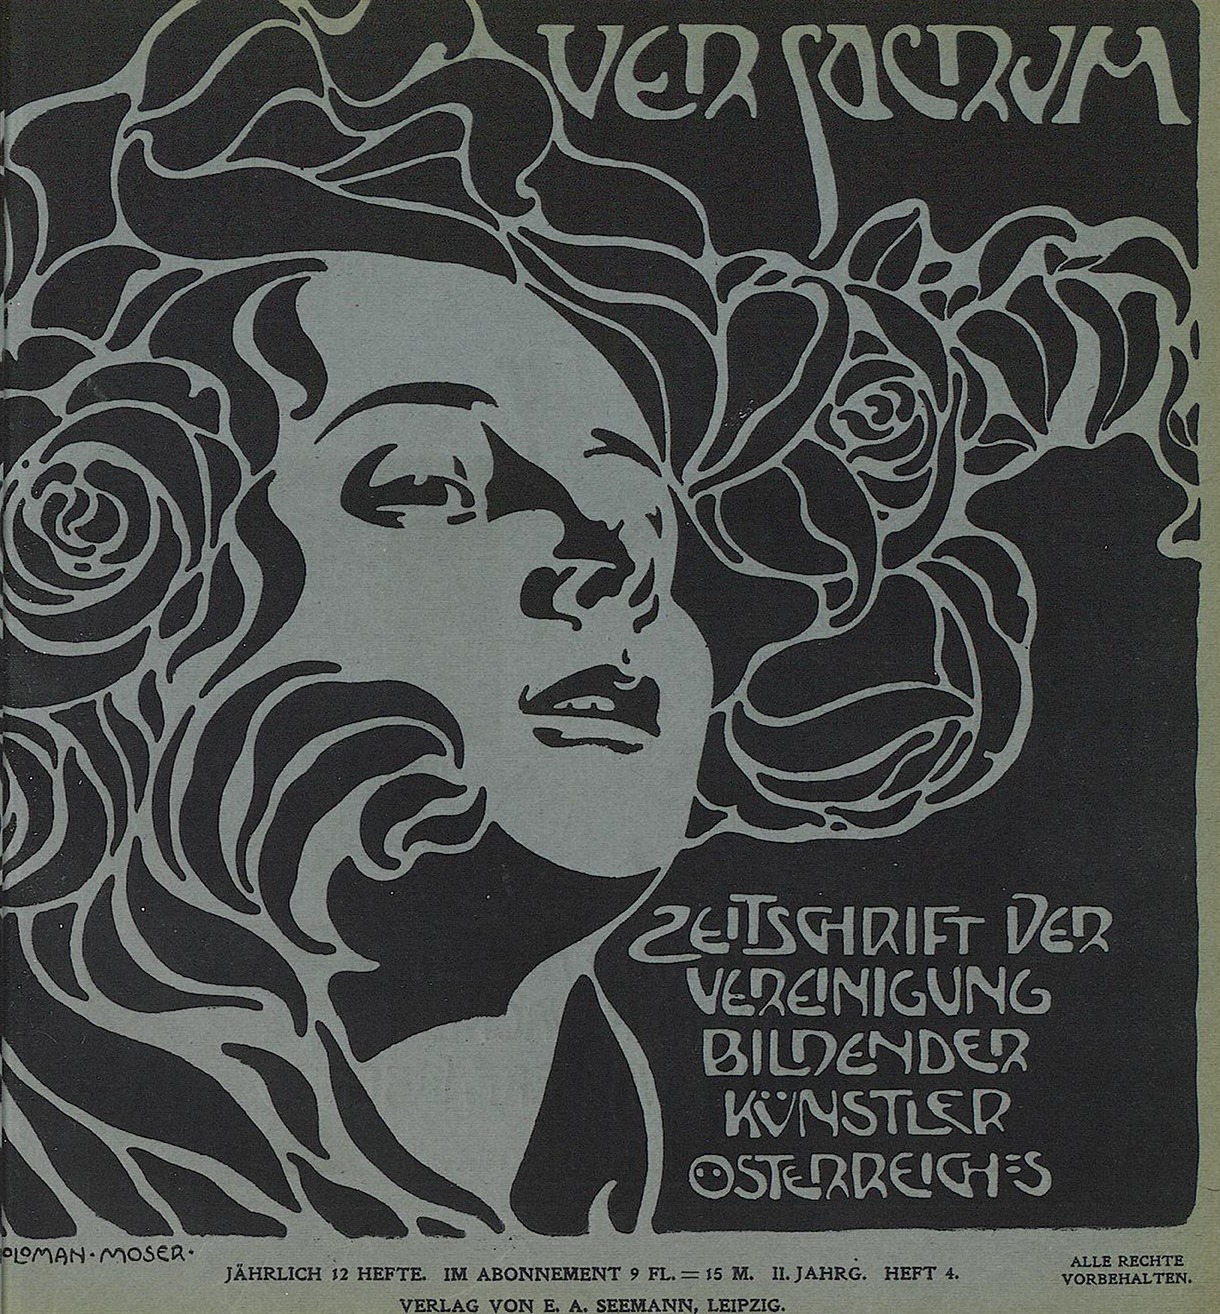 Koloman Moser, cover of Ver Sacrum II: iv, 1899 (picture credit: Universitätsbibliothek Heidelberg). From Art in Vienna